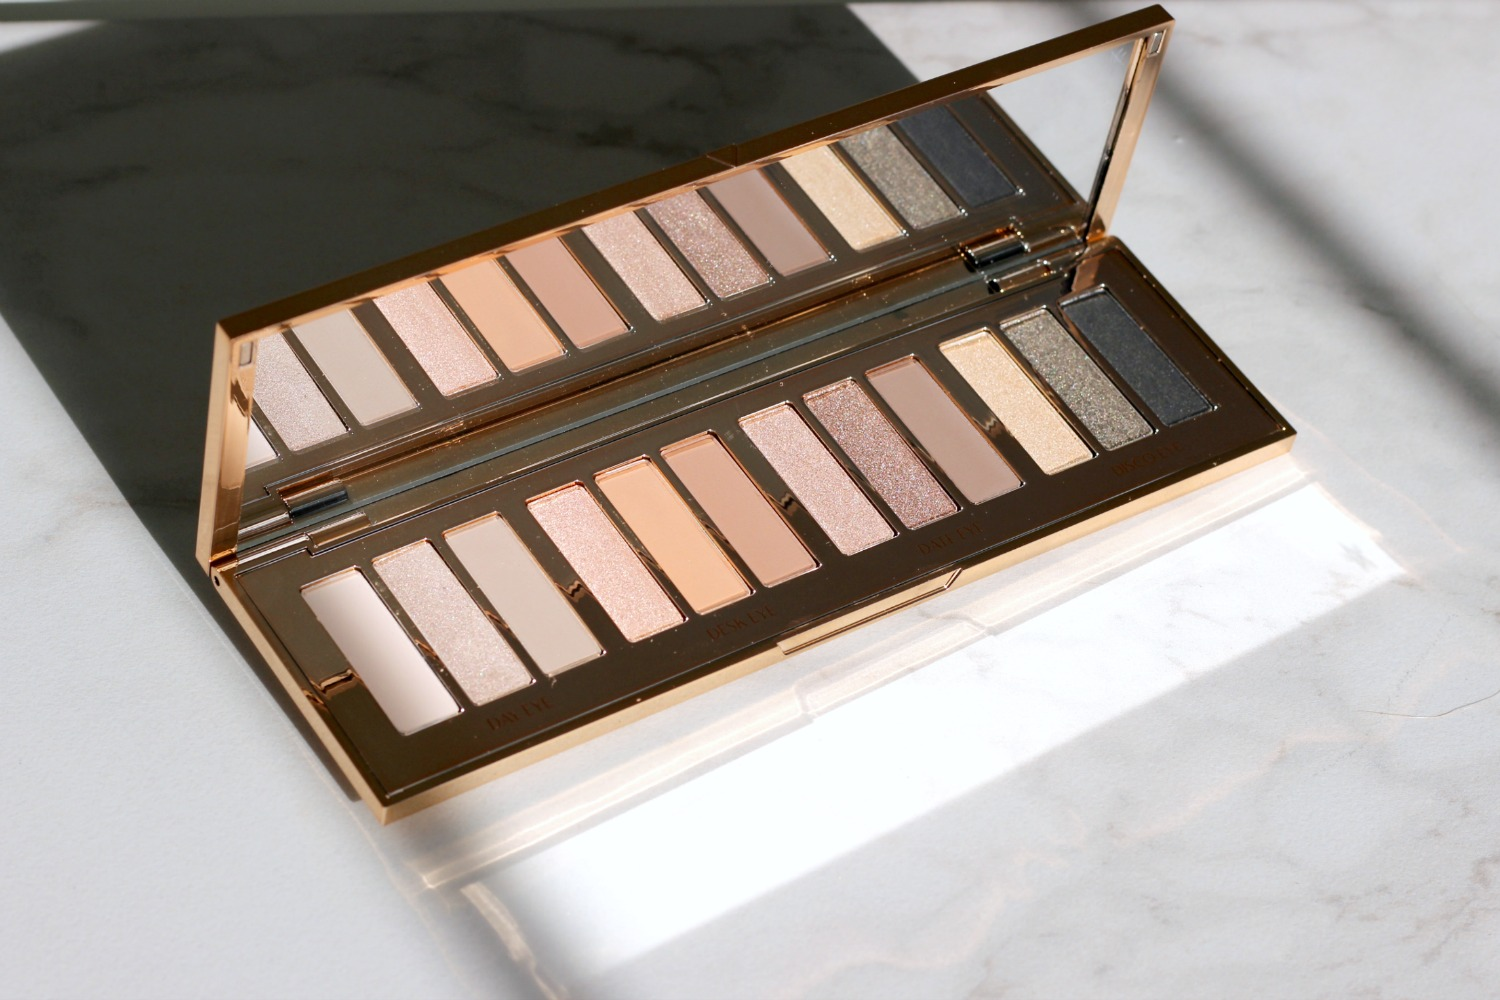 Charlotte Tilbury Instant Eye Palette Review and Demo Looks